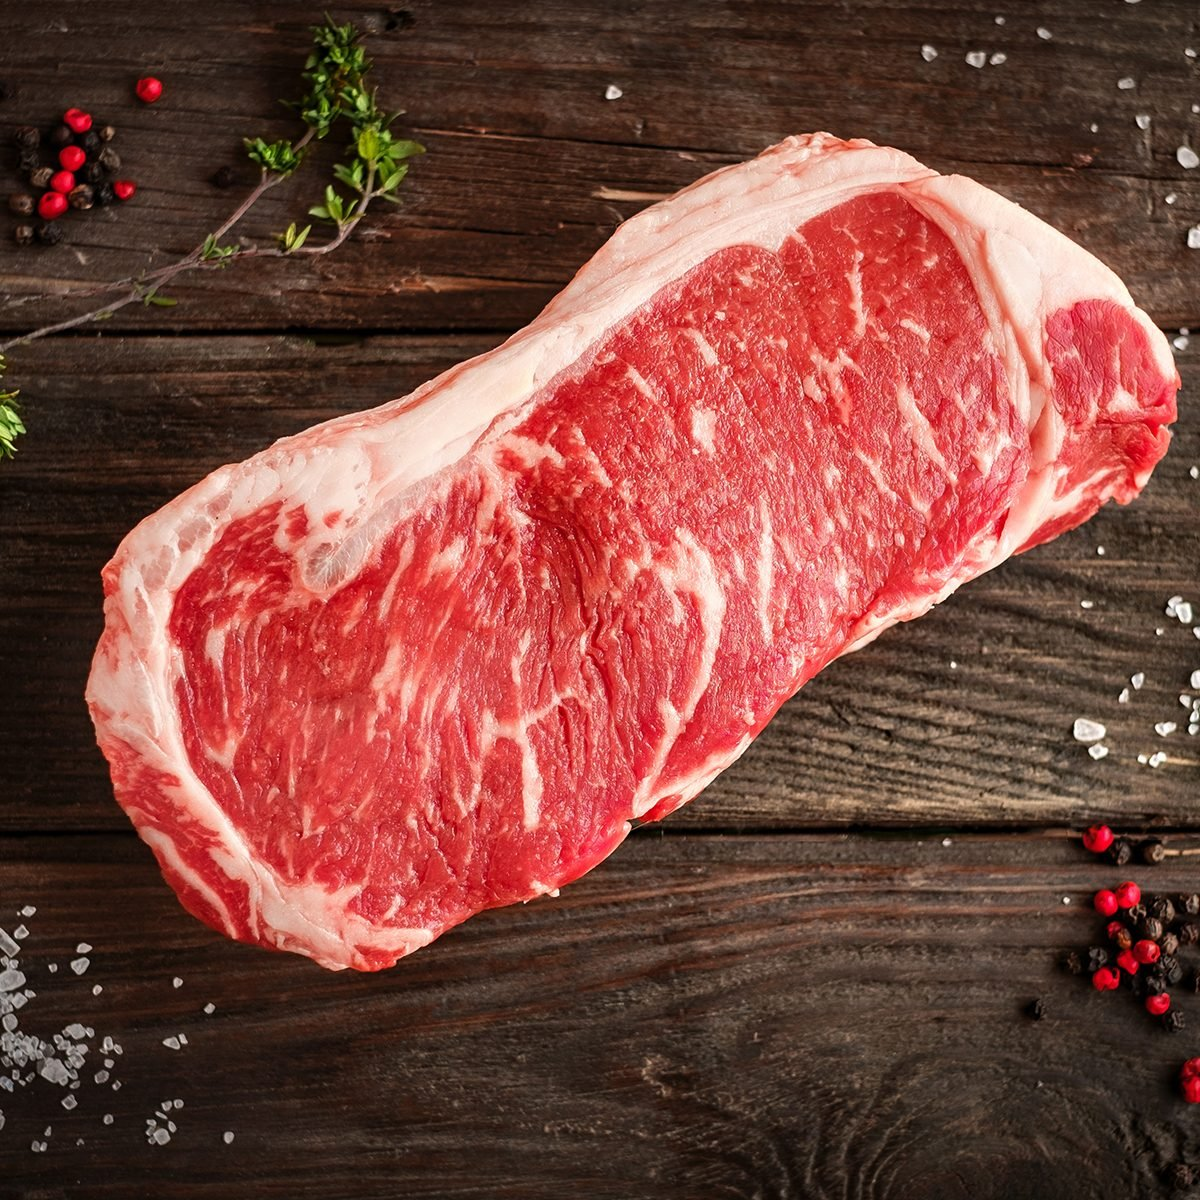 raw strip loin steak on white wooden background in rustic style with salt and herbs